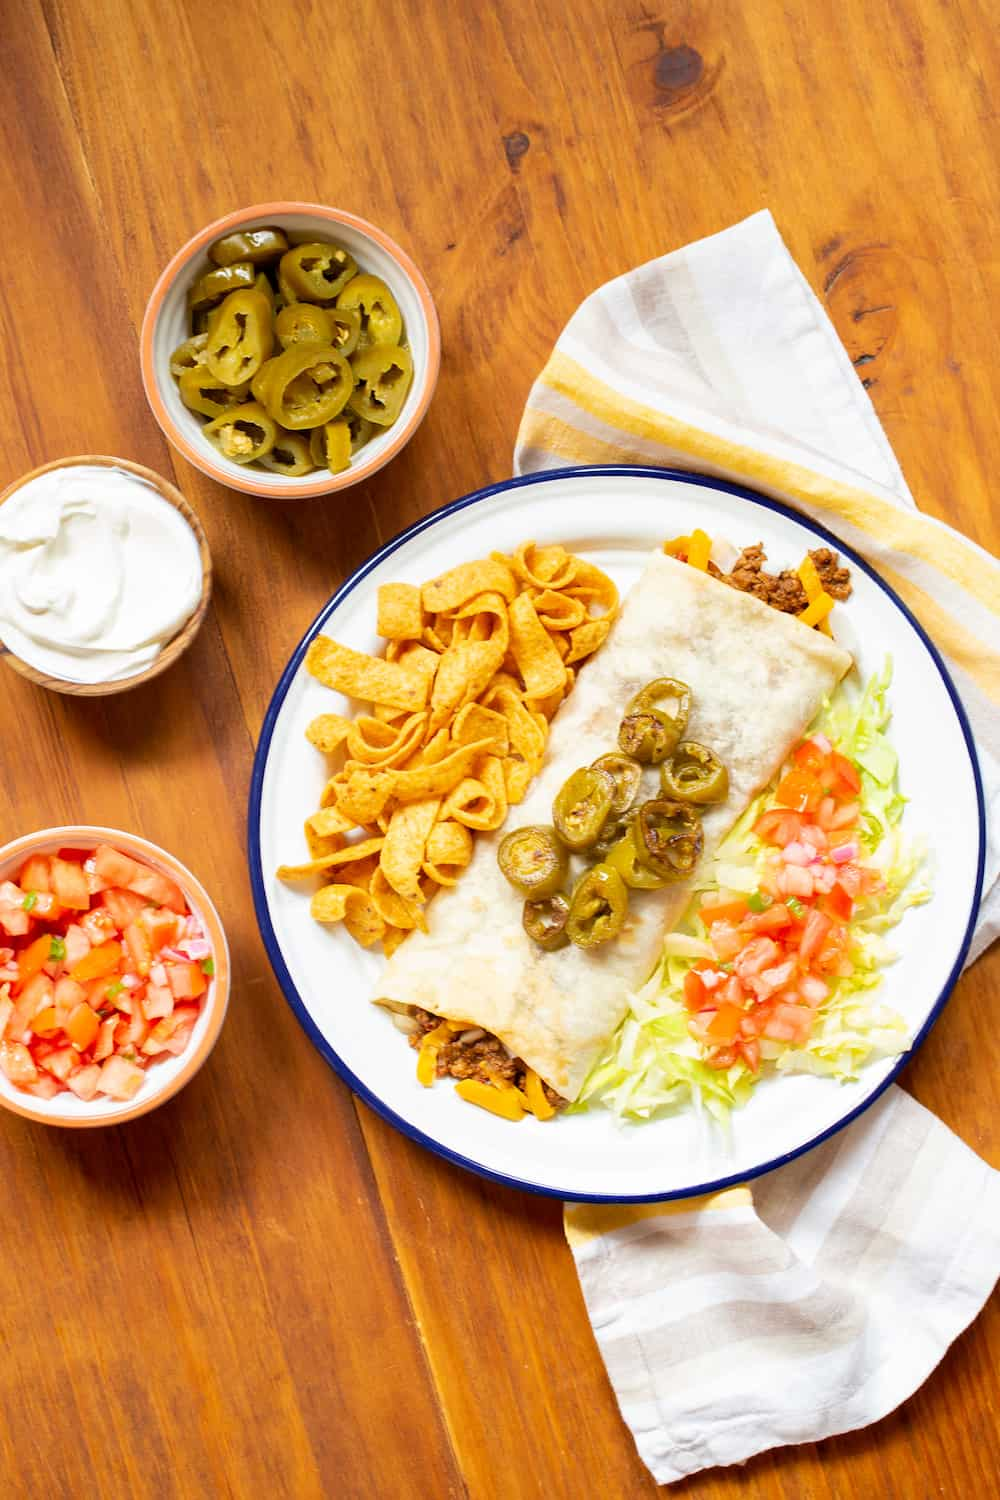 Texas-Style Chili Cheese Burritos from Amarillo